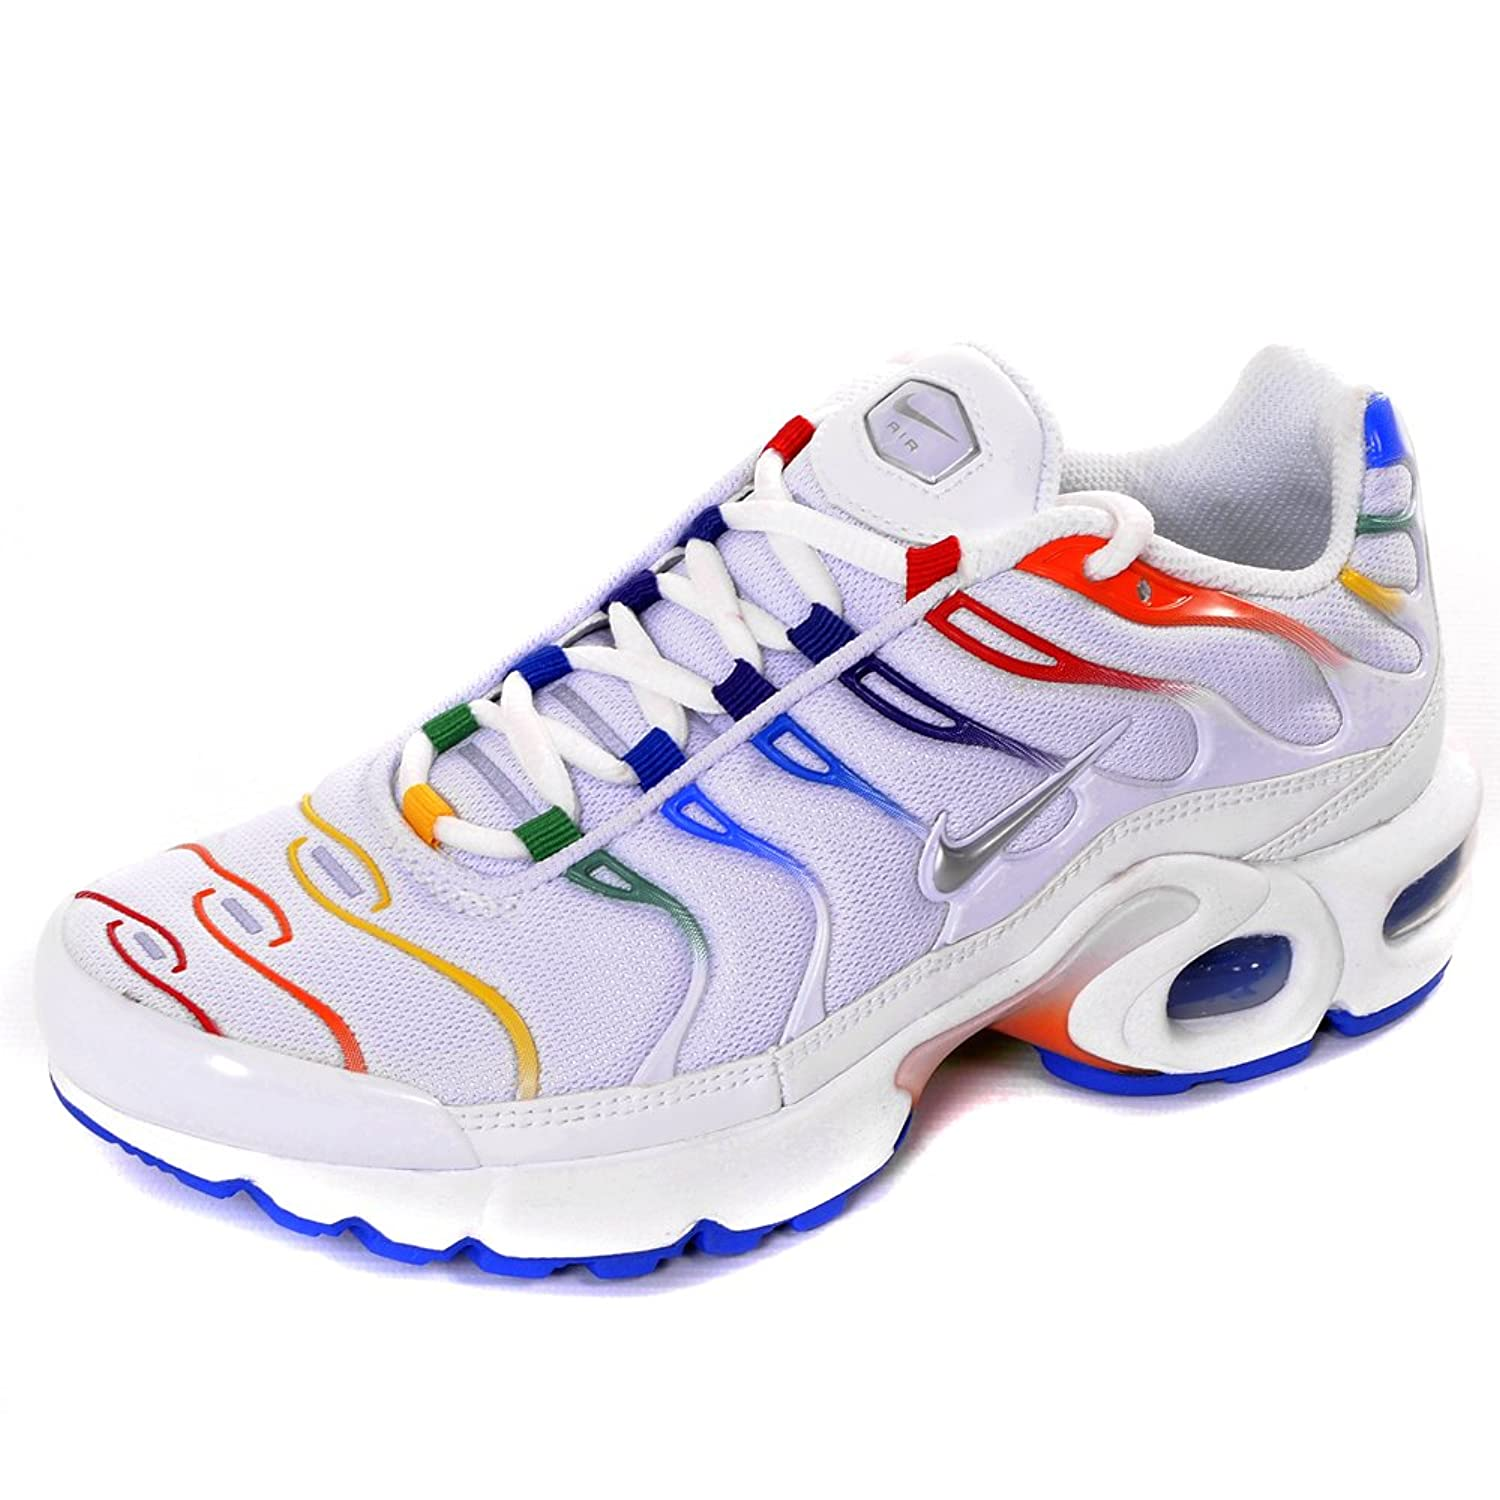 pretty nice d736f 859bb ... new zealand nike air max plus tn trainers white rainbow uk3.5 amazon  shoes bags